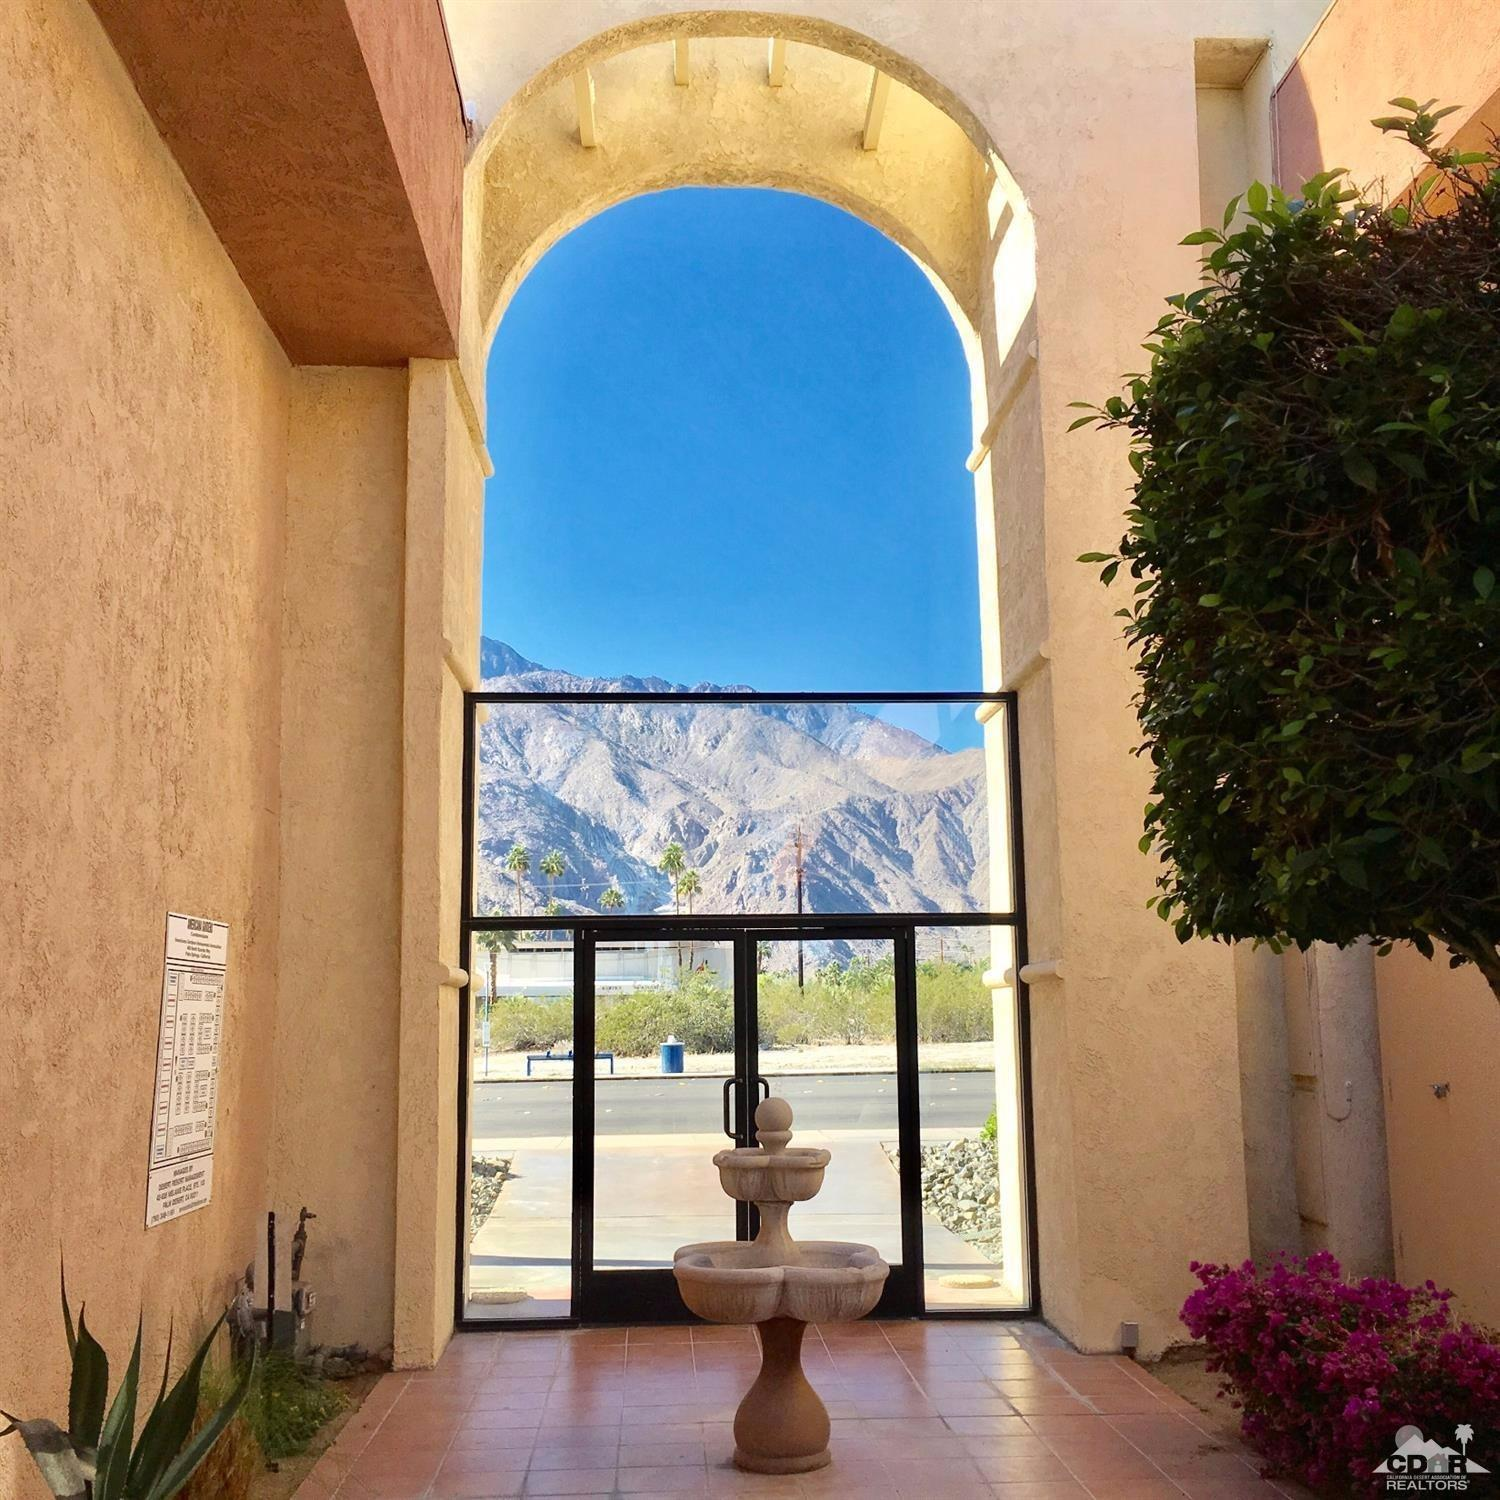 Rancho Mirage Apartments: Palm Springs Real Estate, Condos And